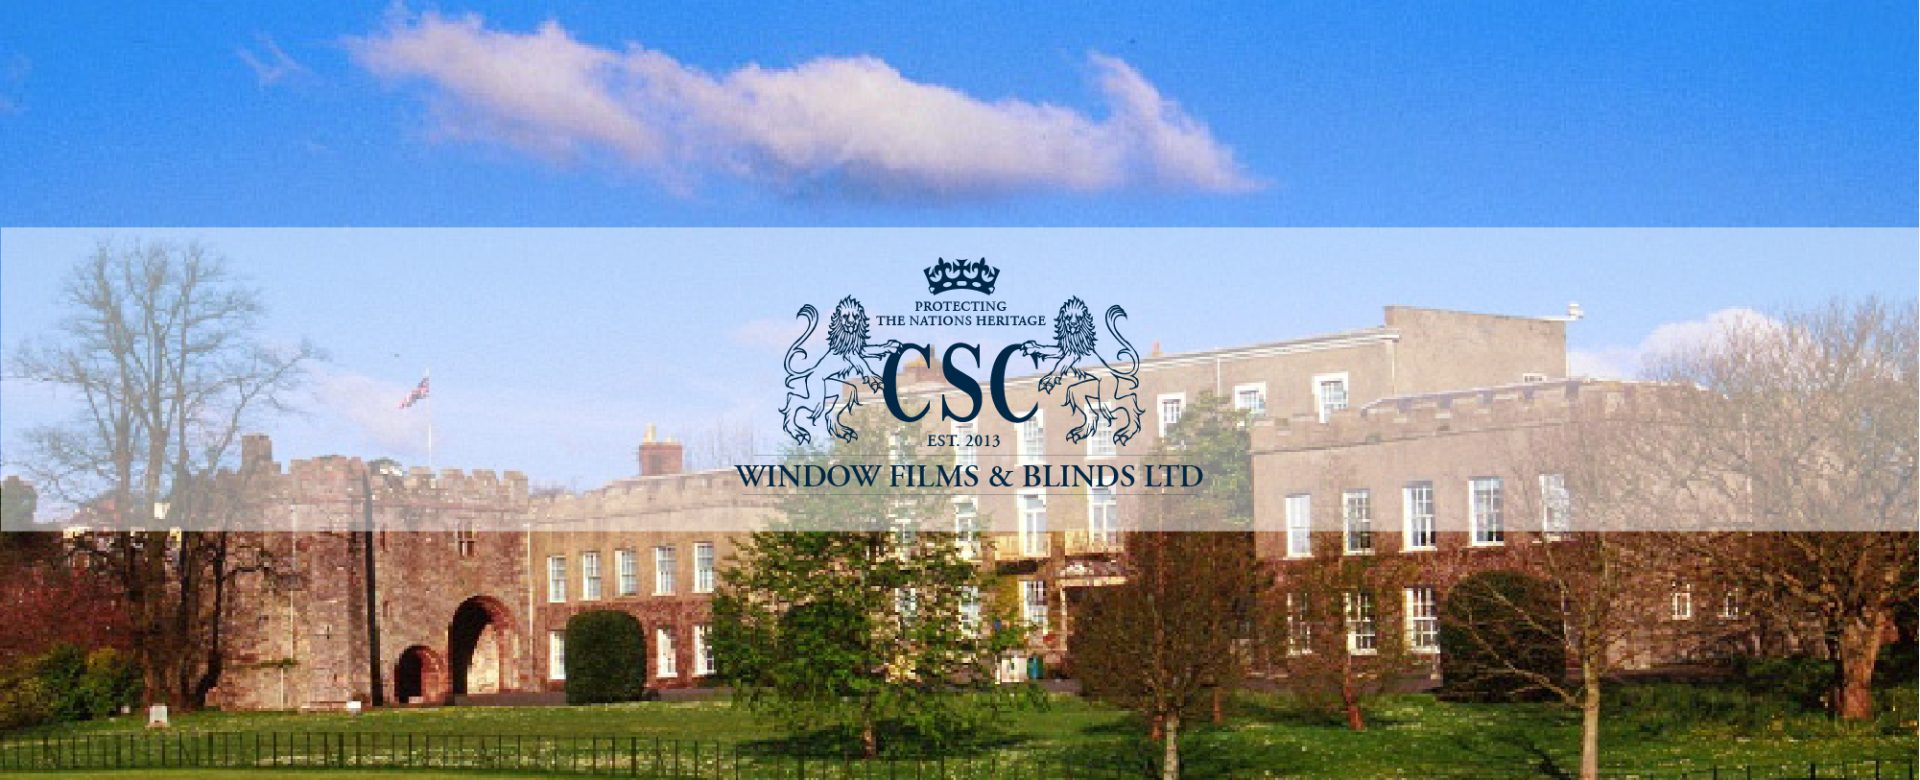 CSC WINDOW FILMS